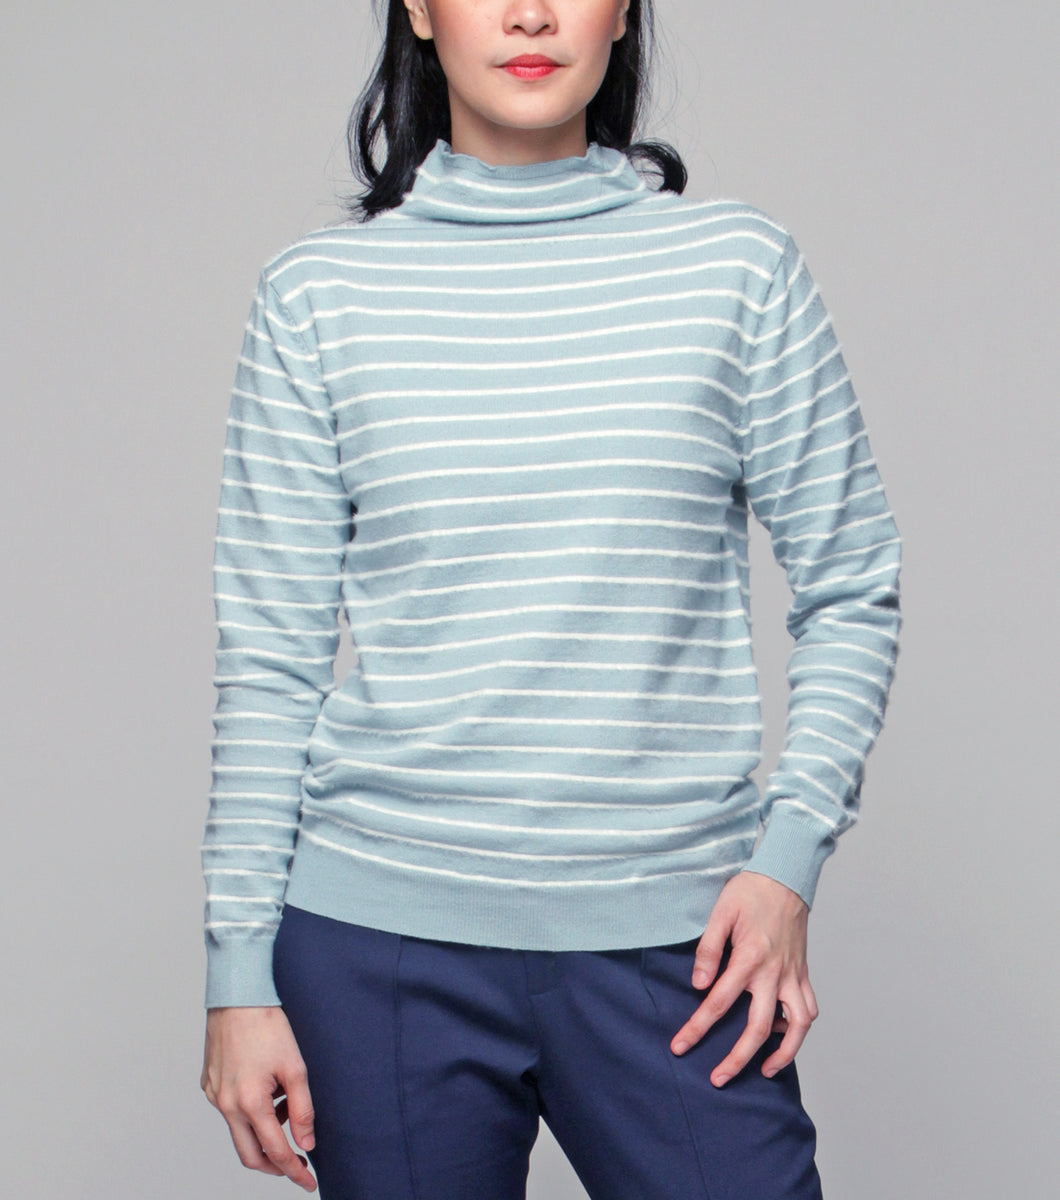 Lita Turtleneck Pullover Knit